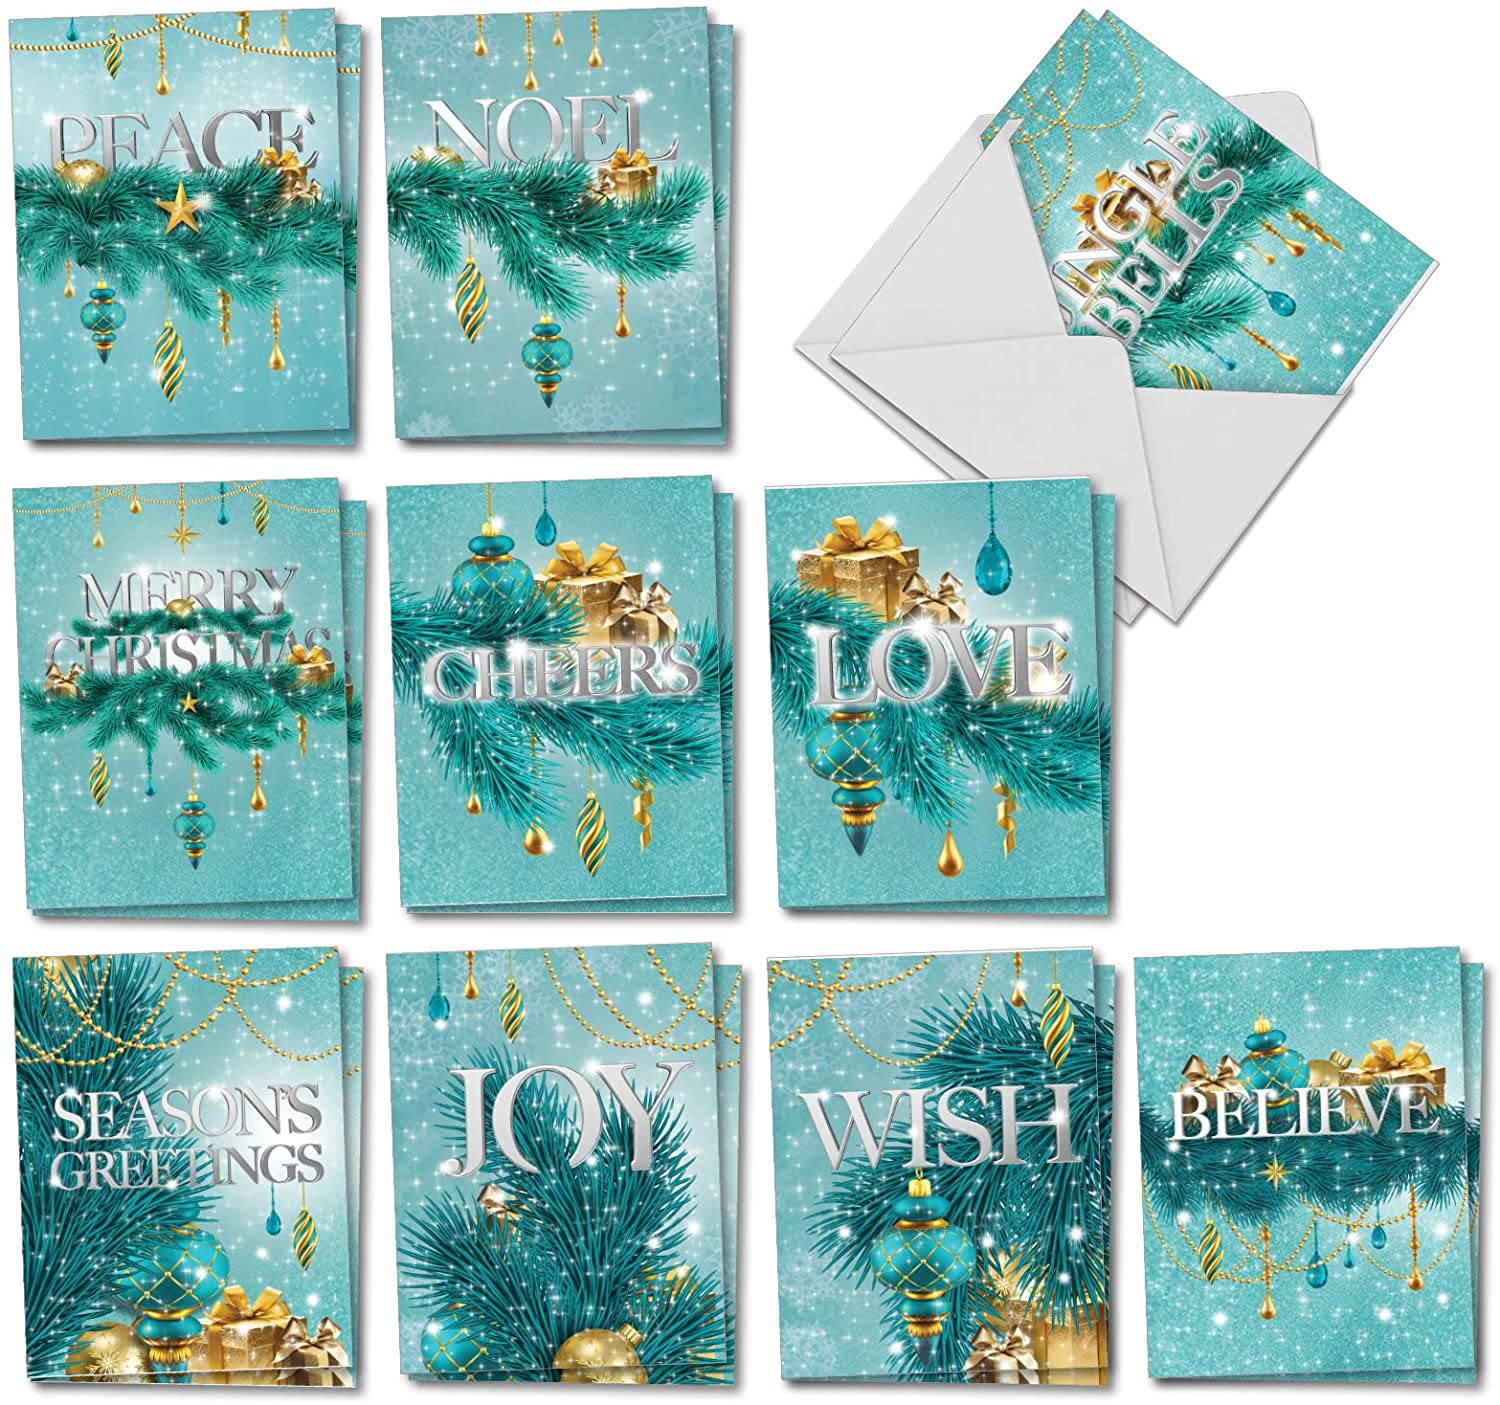 The Best Card Company Season's Sparkles - 20 Assorted Boxed Christmas Thank You Note Cards with Envelopes (4 x 5.12 Inch) - Showing Shining Decorations in Thanks for the Season AM2945XTG-B2x10